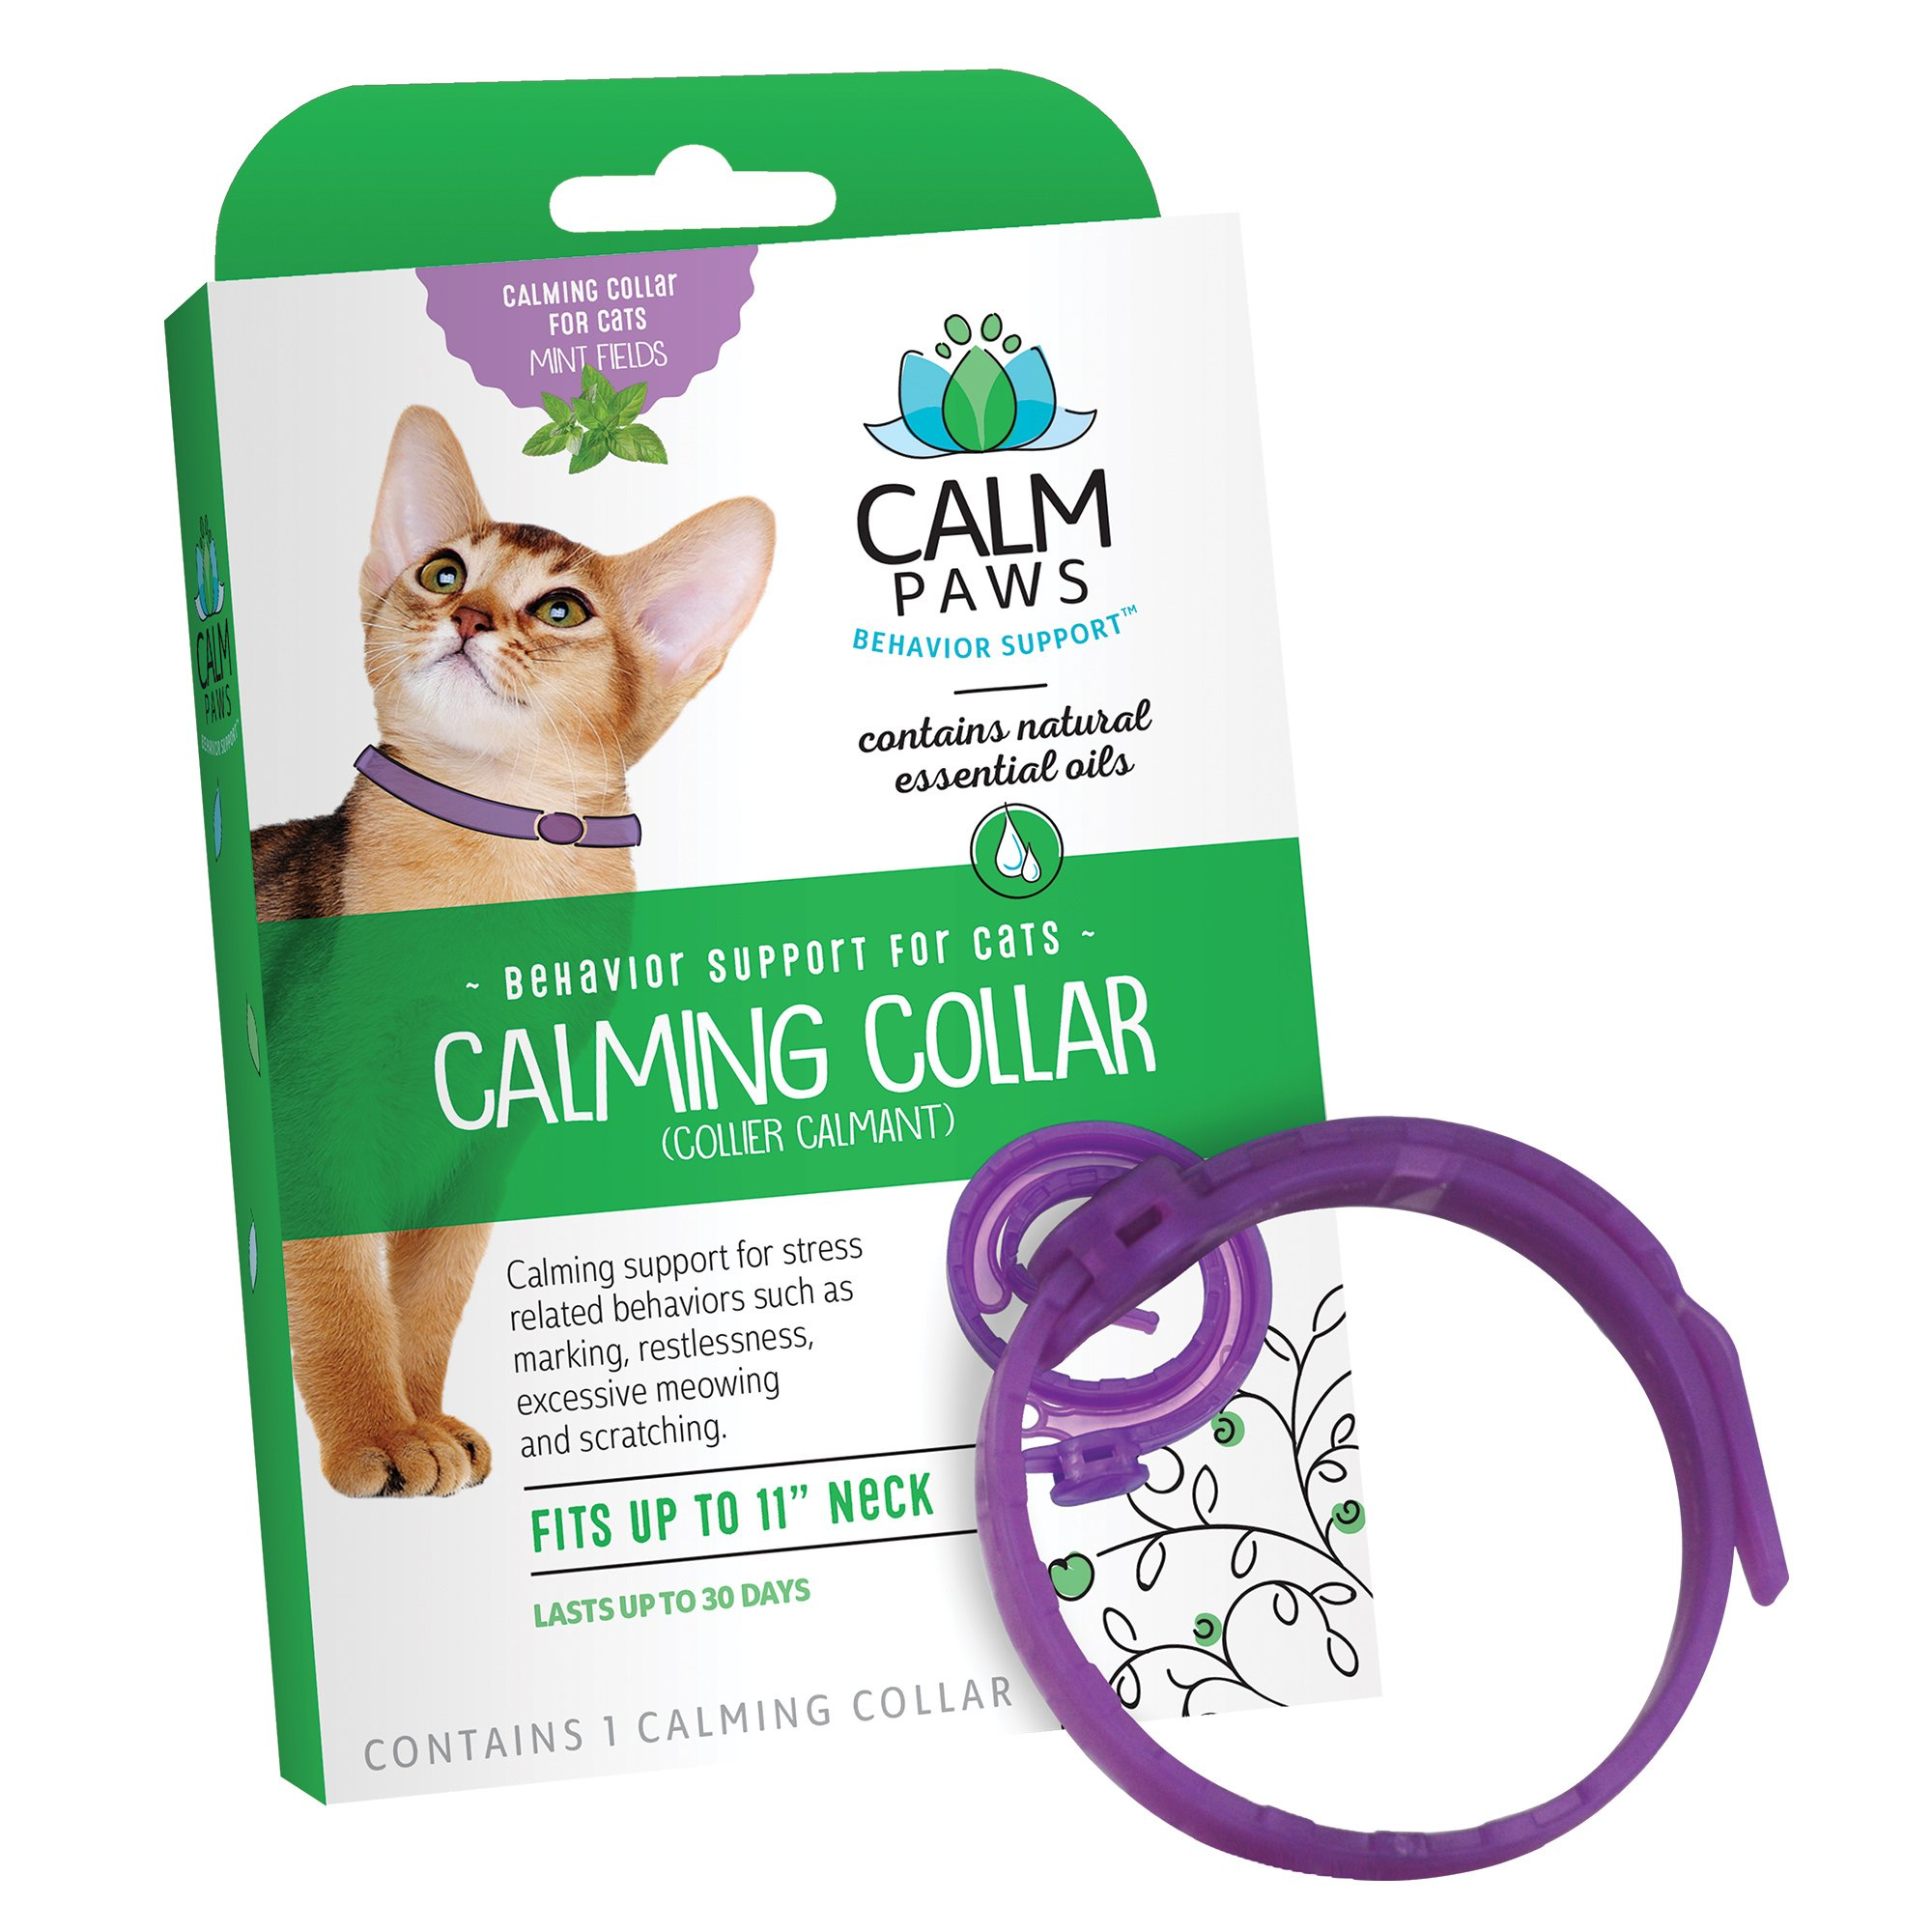 Calm Paws Calming Collar Cat by Calm Paws